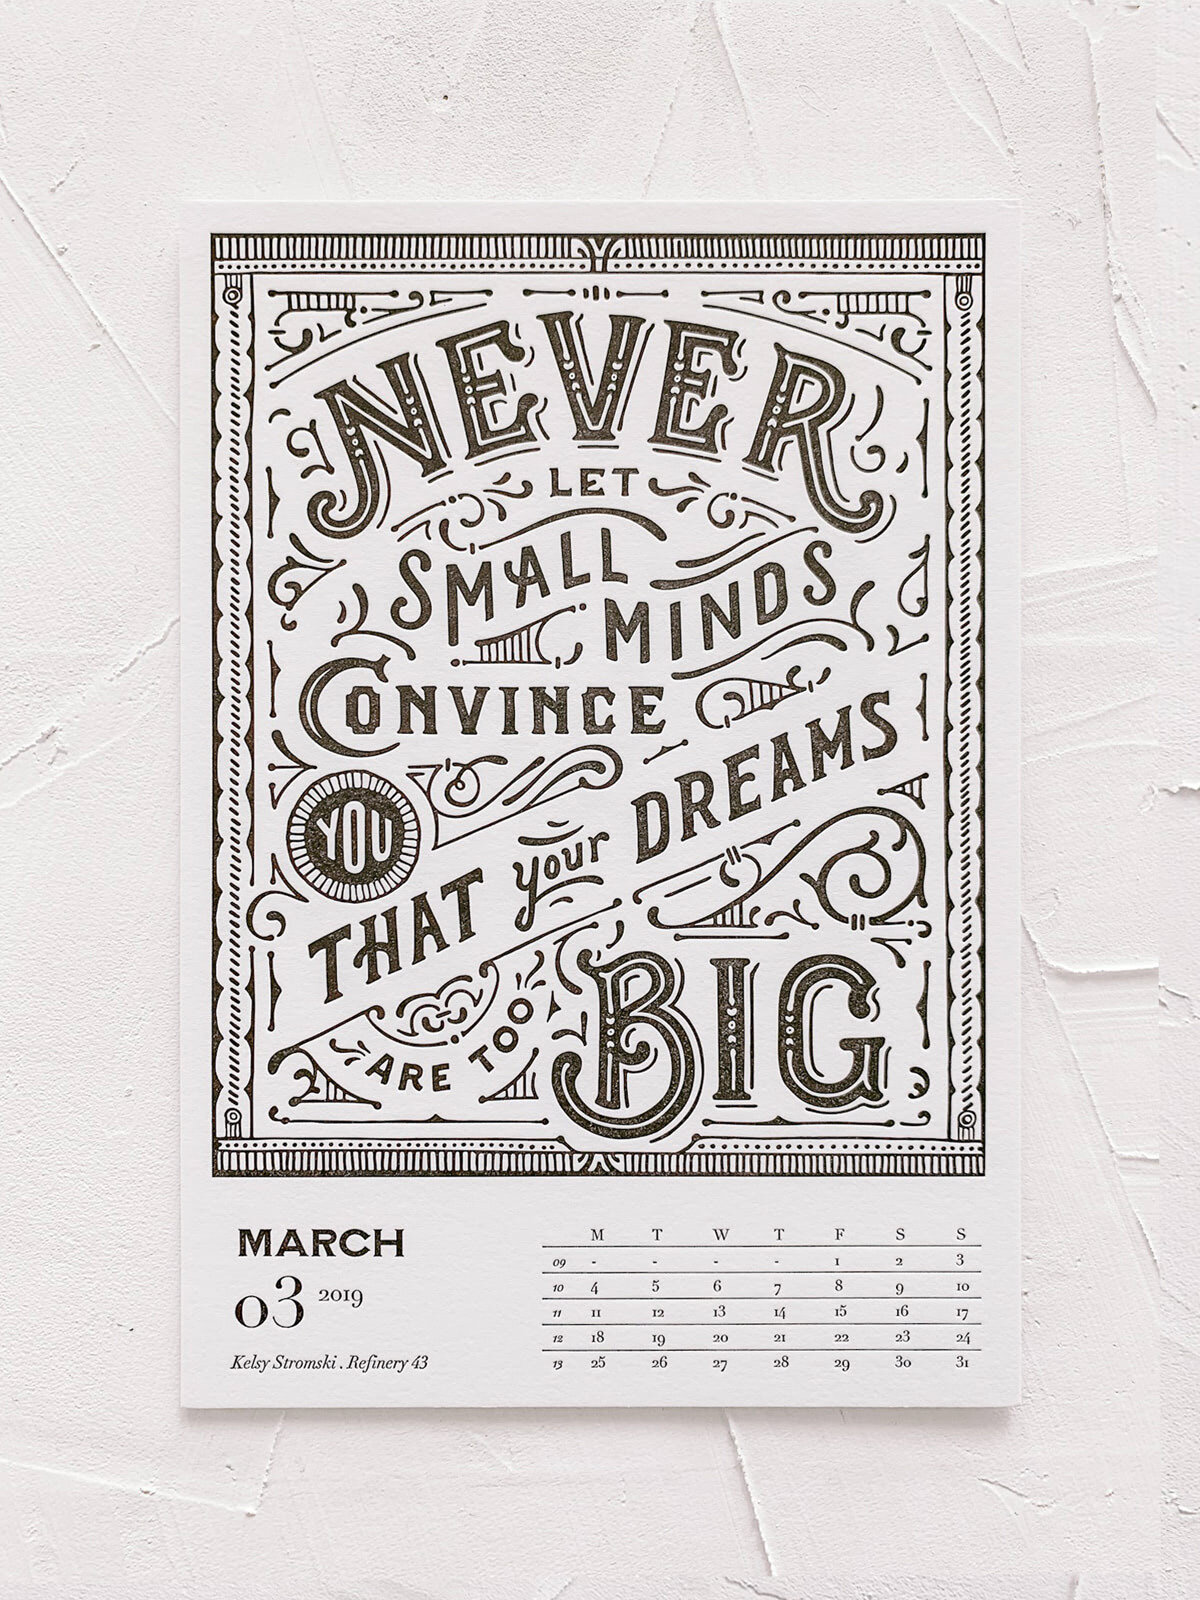 Mr Cup Letterpress Calendar | Design by Refinery 43 | Never let small minds convince you that your dreams are too big.